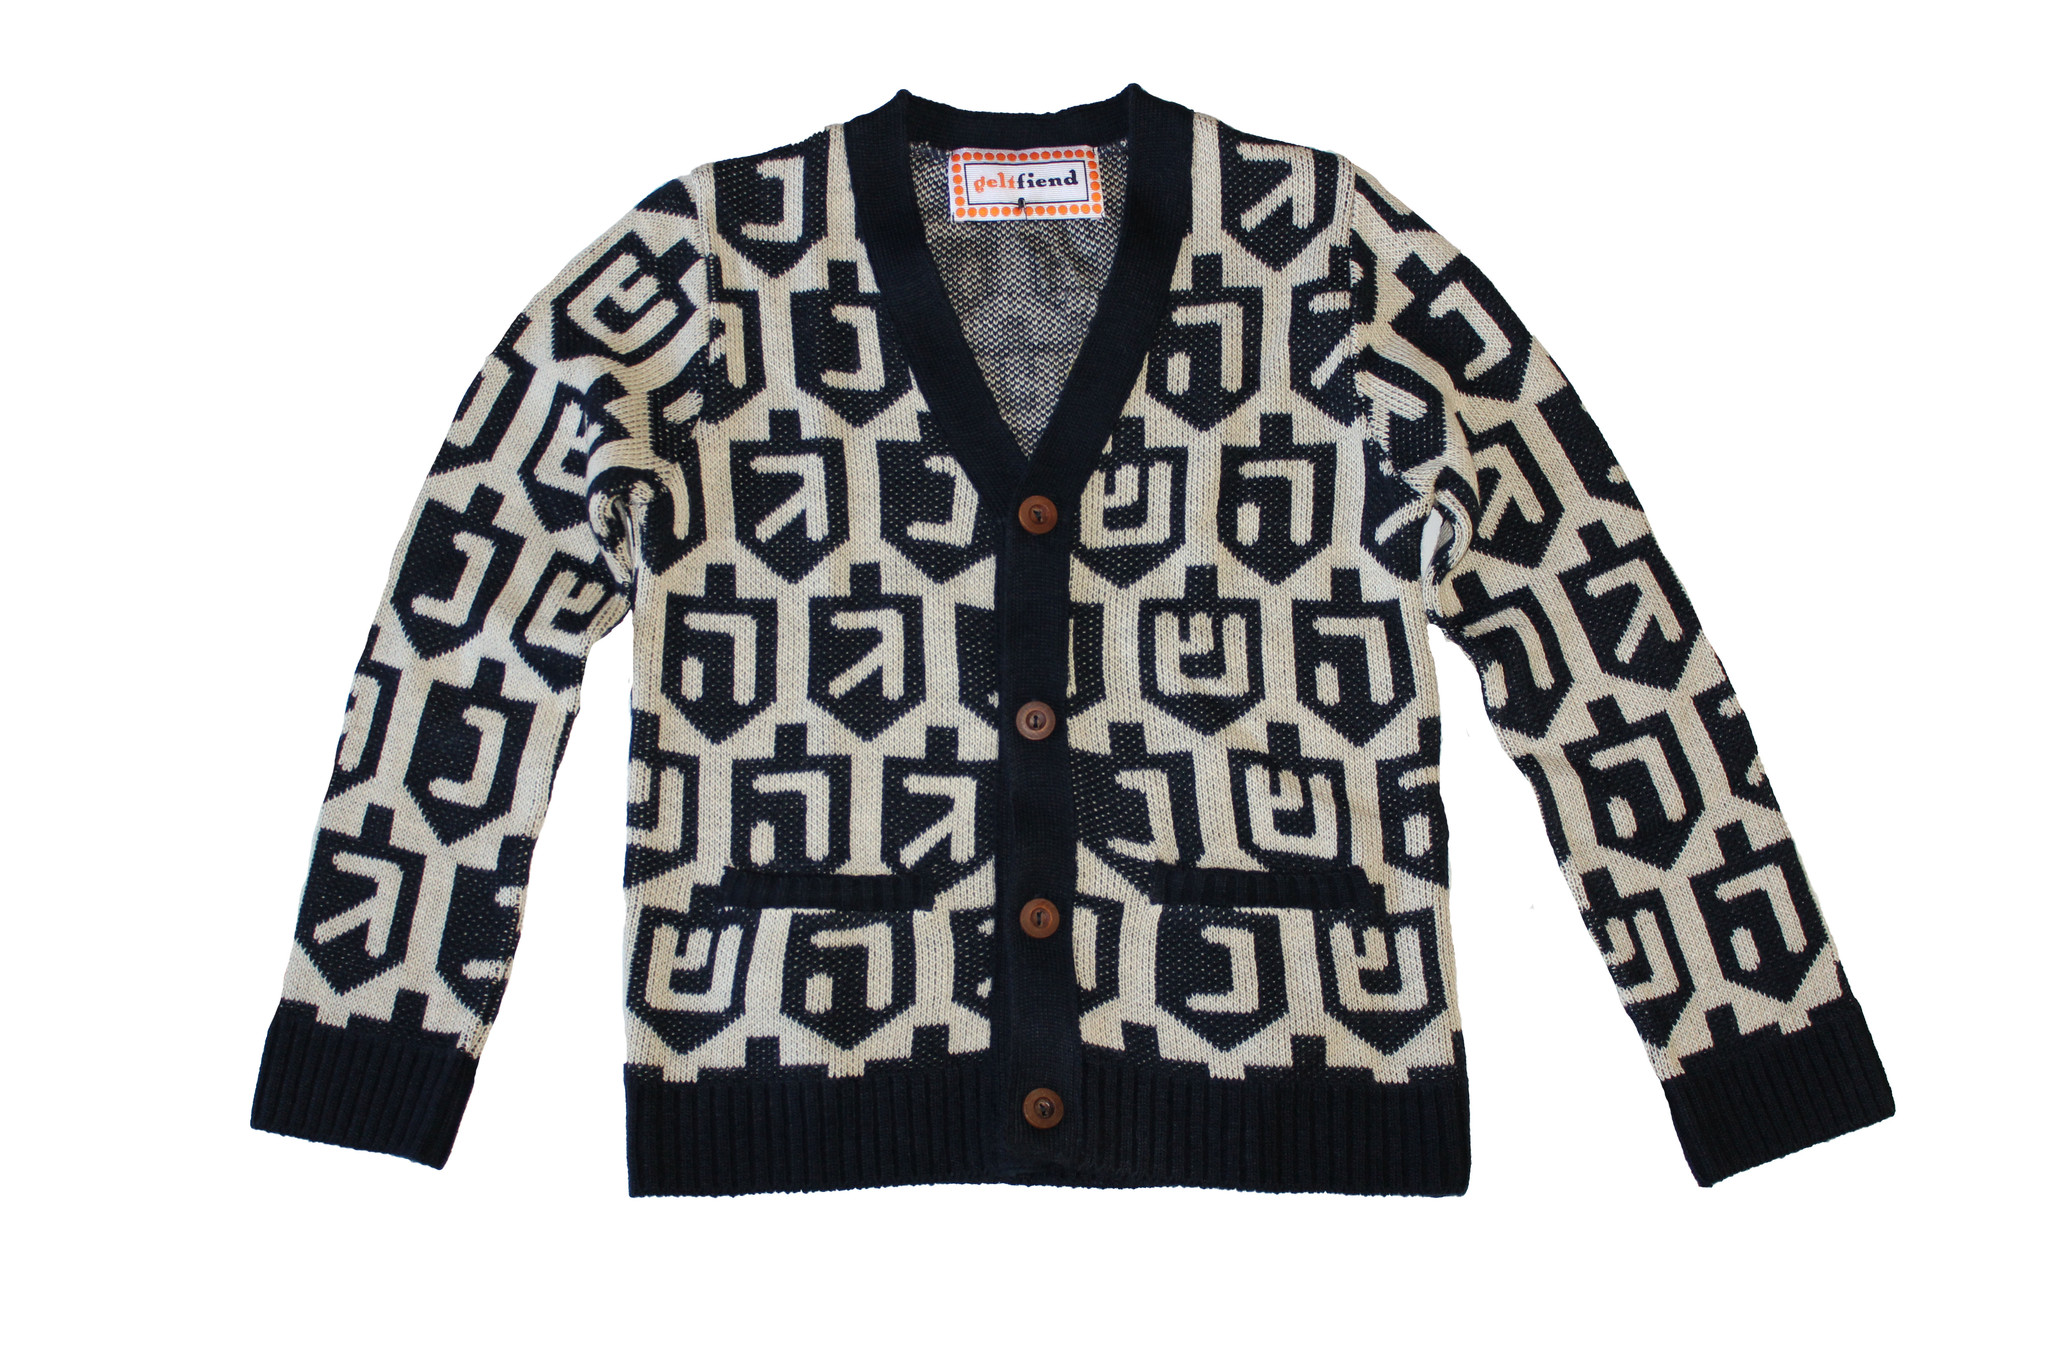 Little Yids! Spinmaster 2.0 Chanukah Sweater in Navy, $22 @geltfiend.com